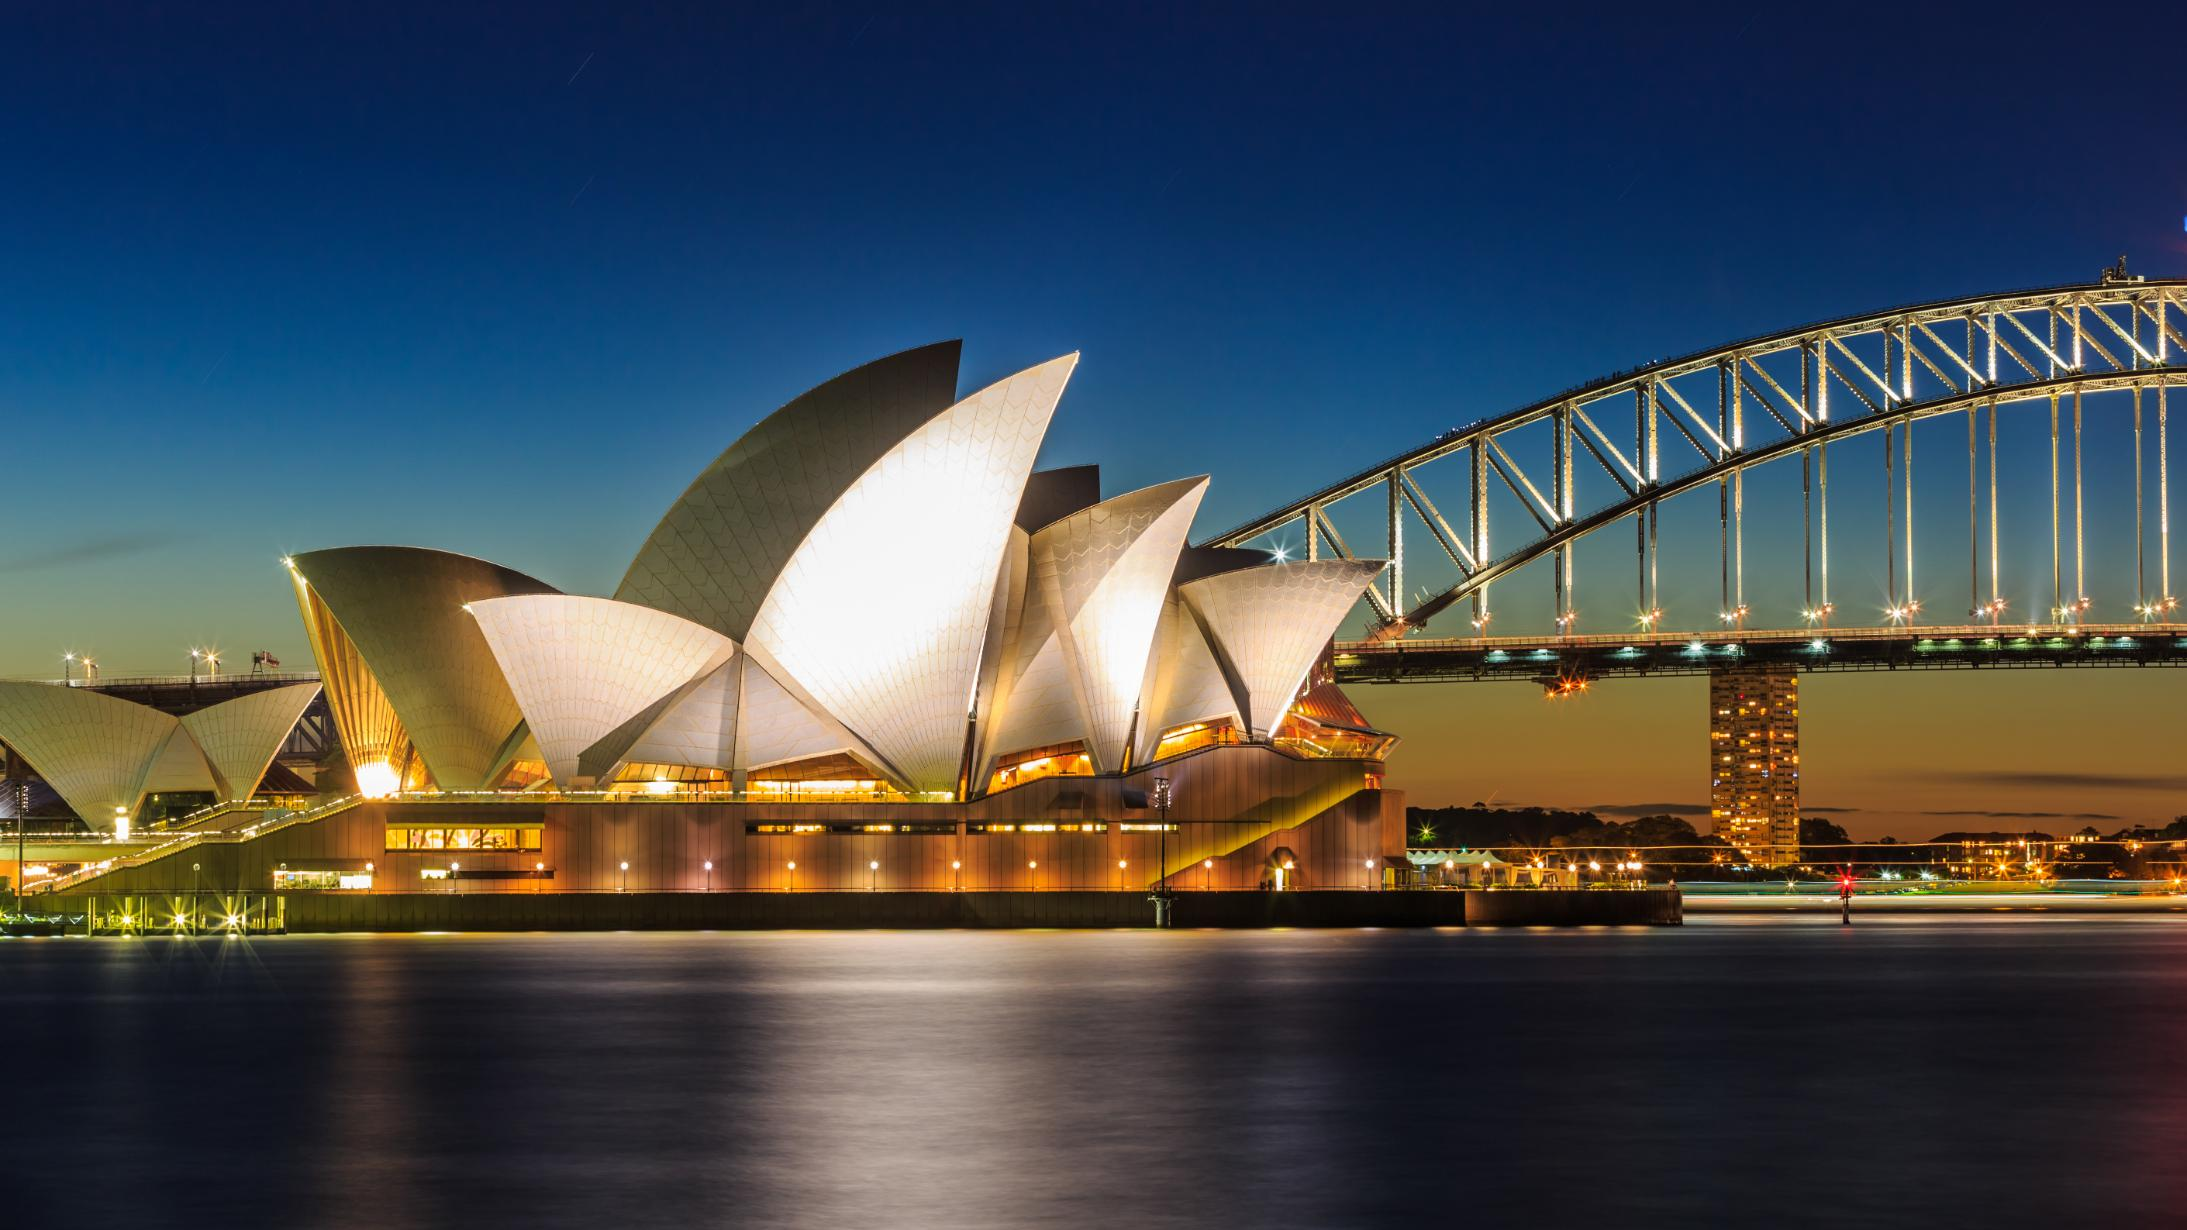 Australia-Easiest Countries To Migrate To From Nigeria